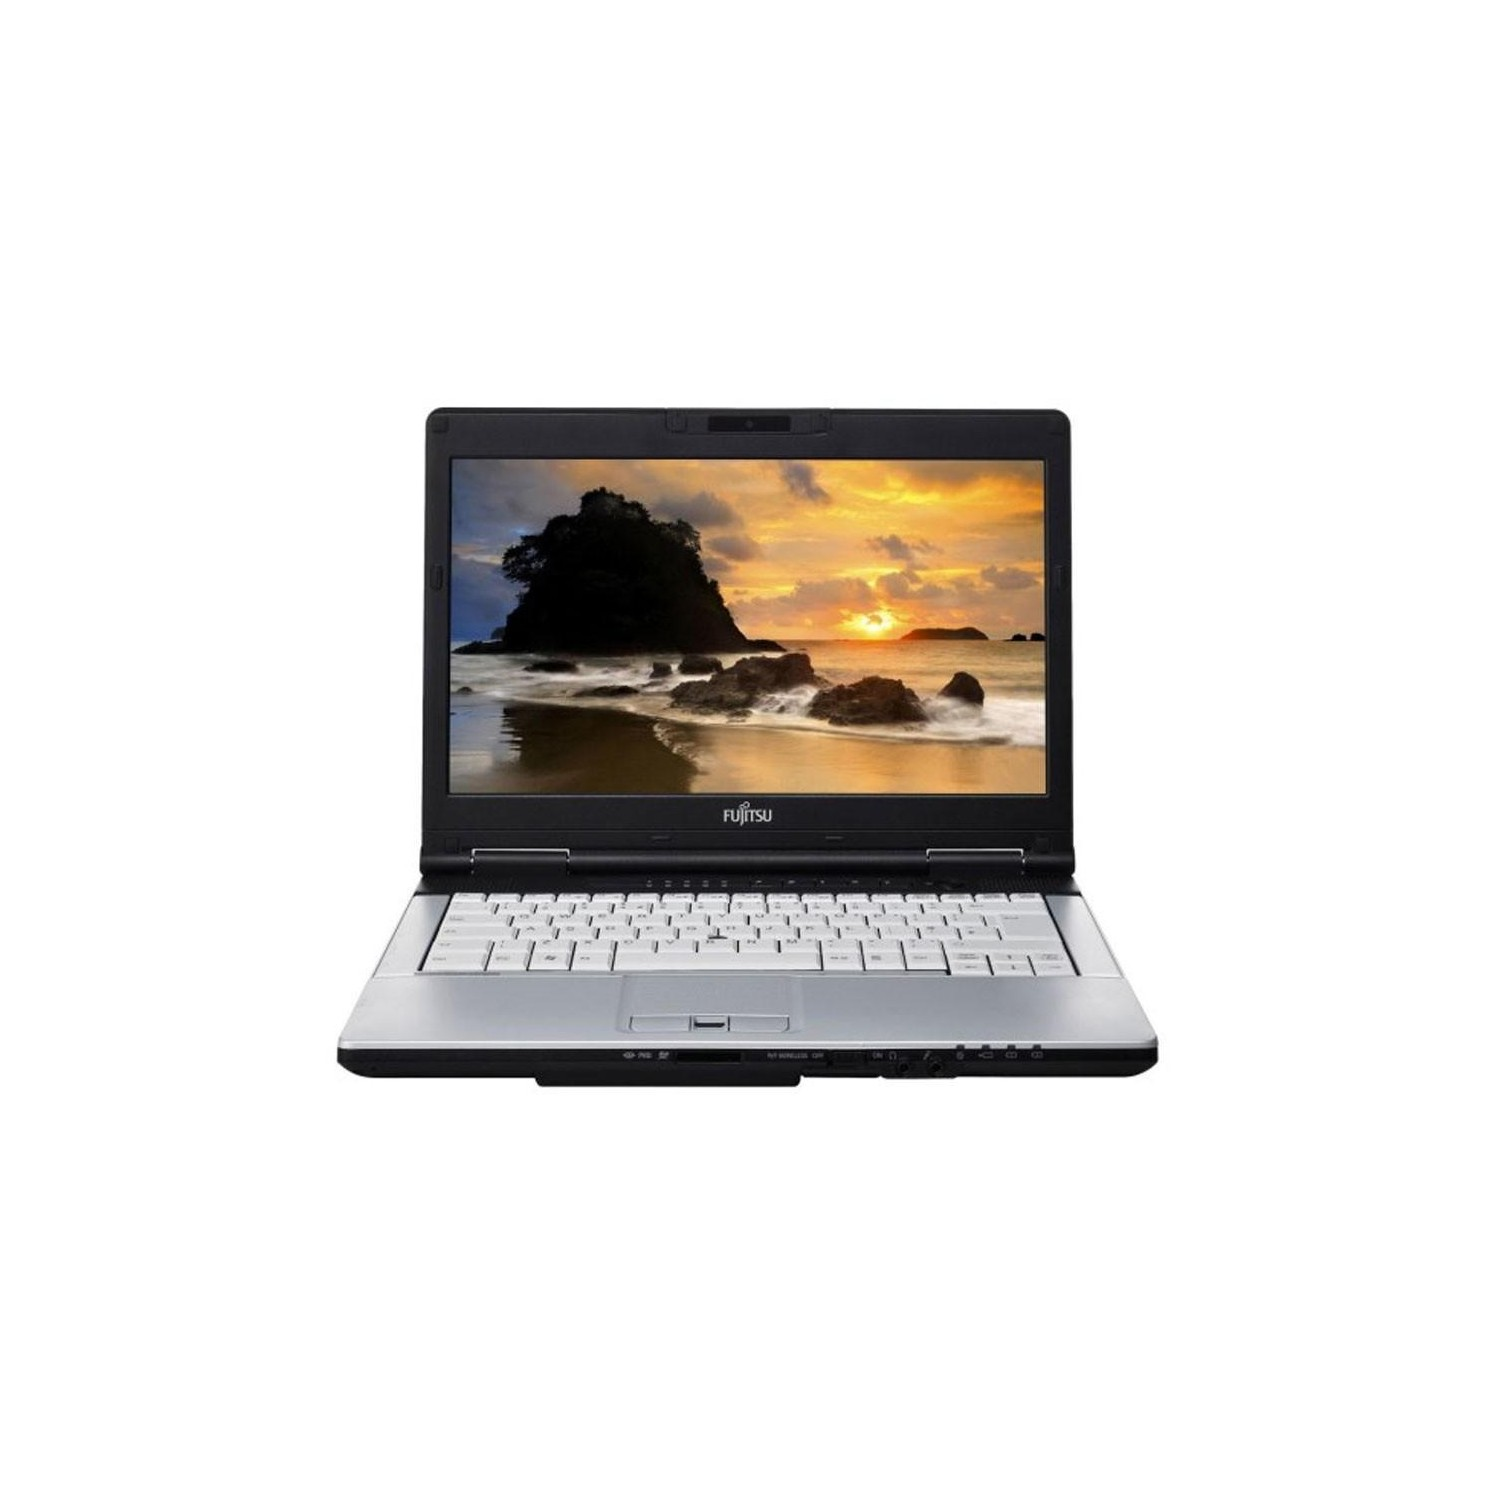 PORTÁTIL FUJITSU LIFEBOOK S751 | i5-2520M | 14"